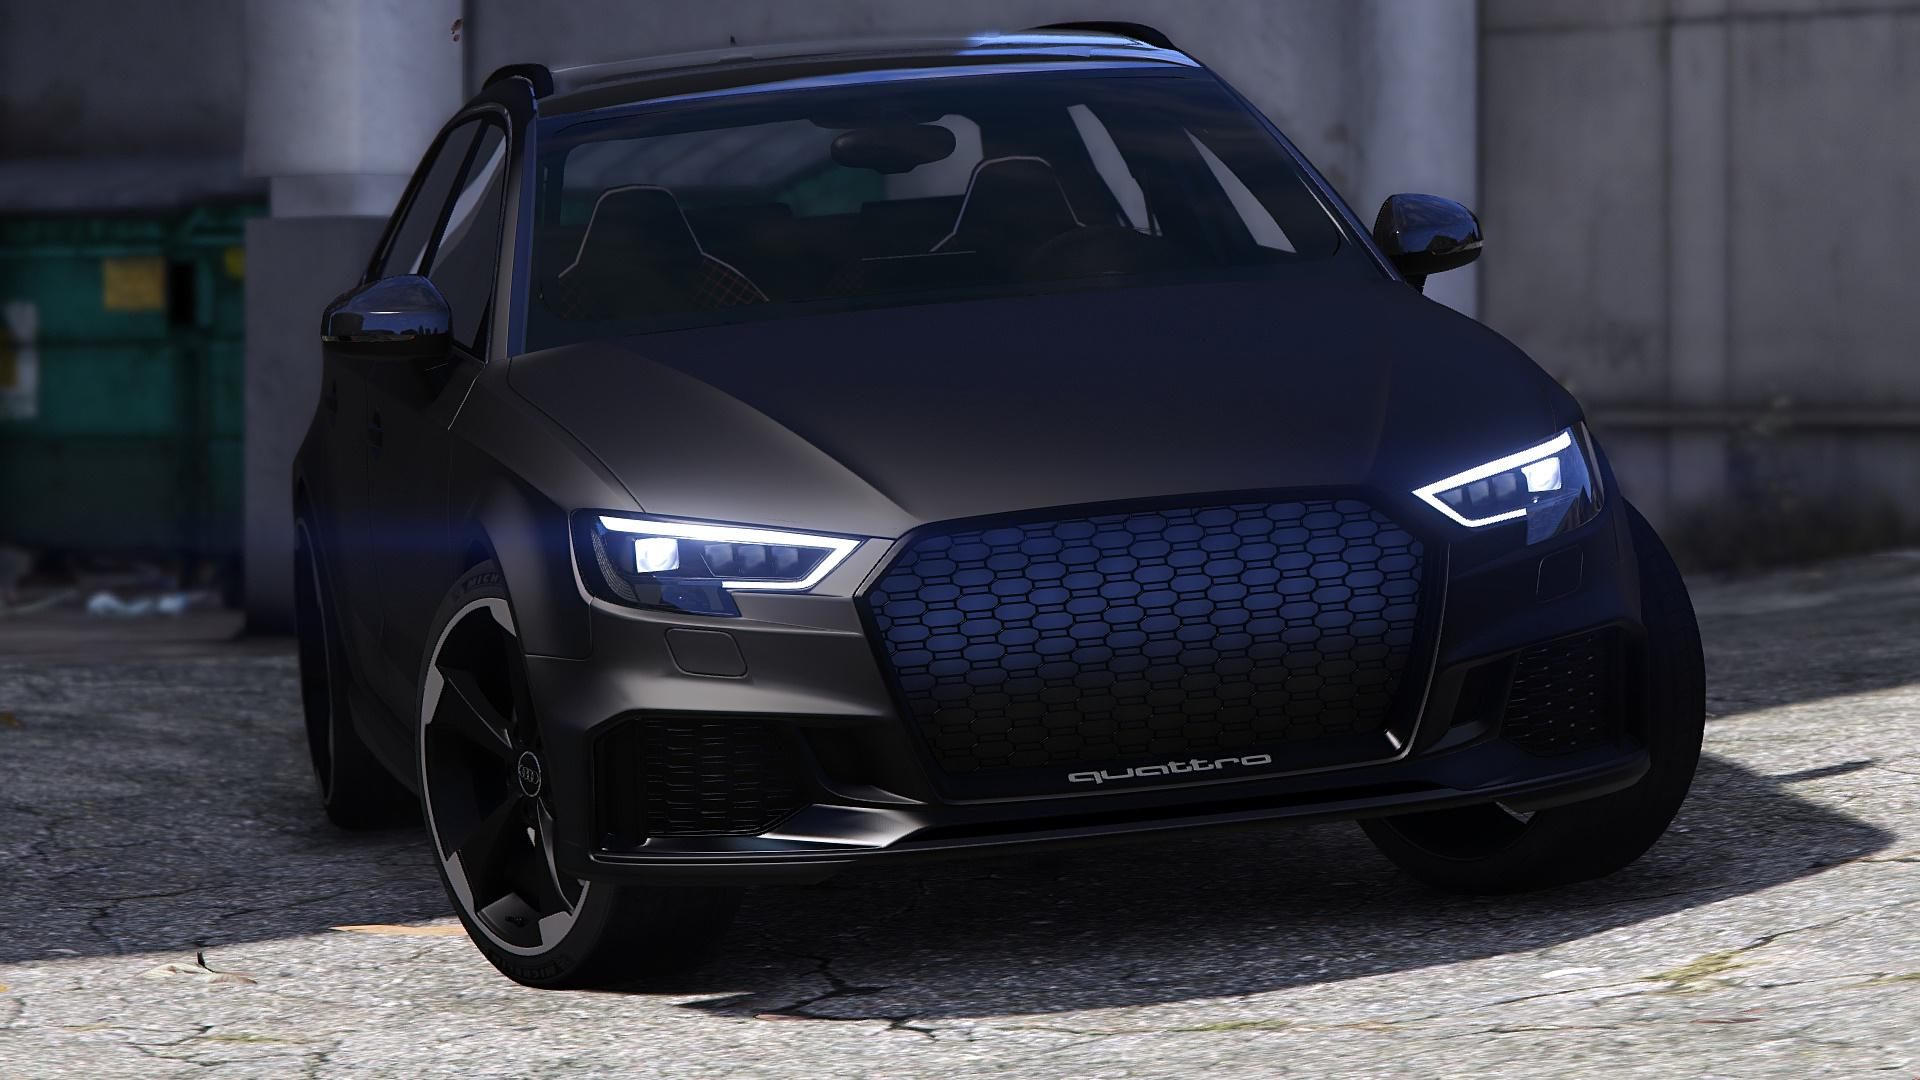 2018 Audi RS3 Parts and Accessories  amazoncom